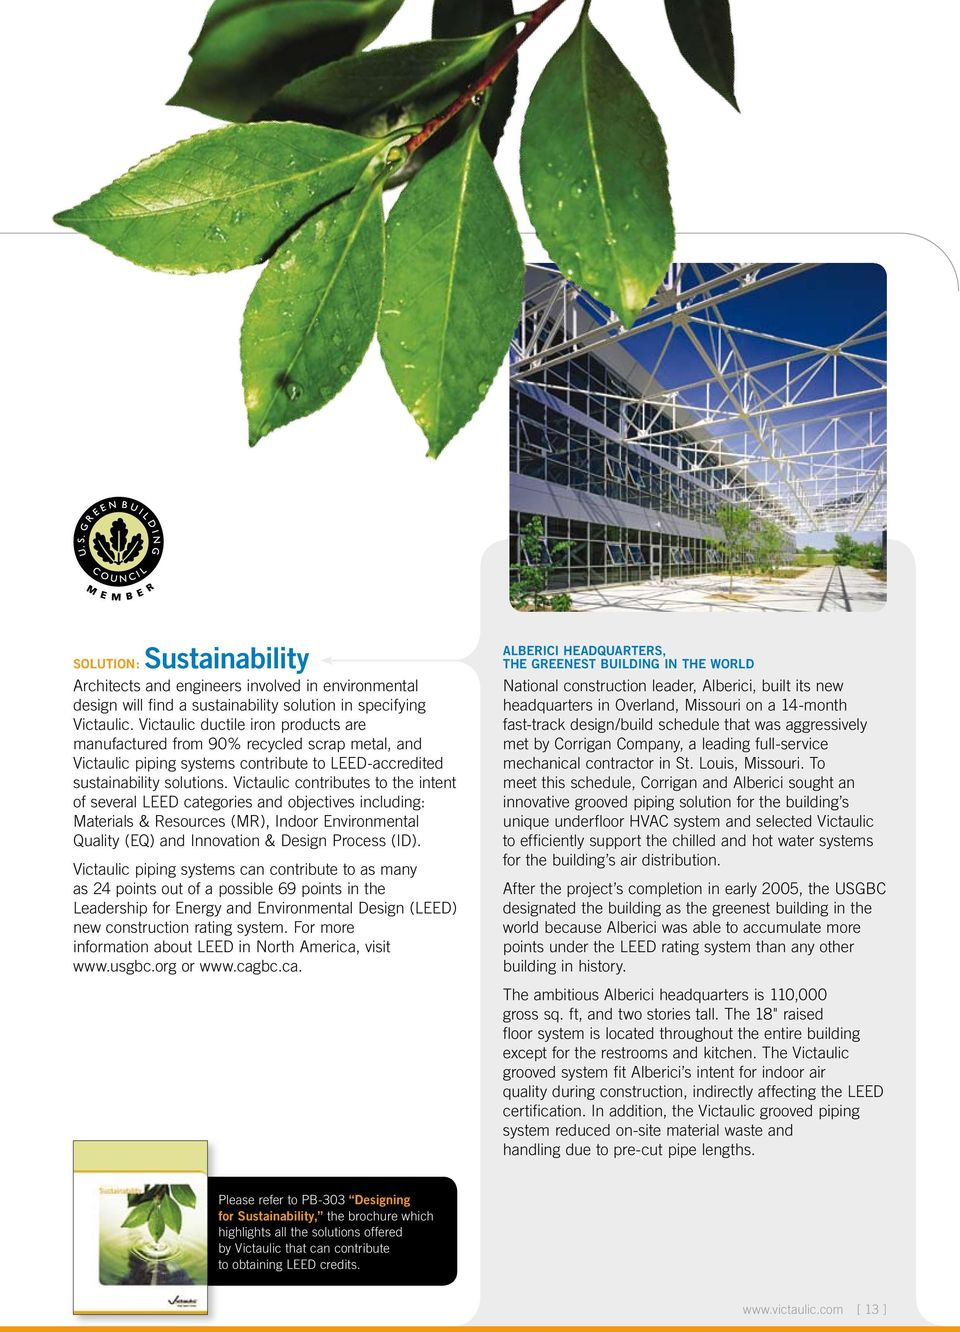 Victaulic contributes to the intent of several LEED categories and objectives including: Materials & Resources (MR), Indoor Environmental Quality (EQ) and Innovation & Design Process (ID).